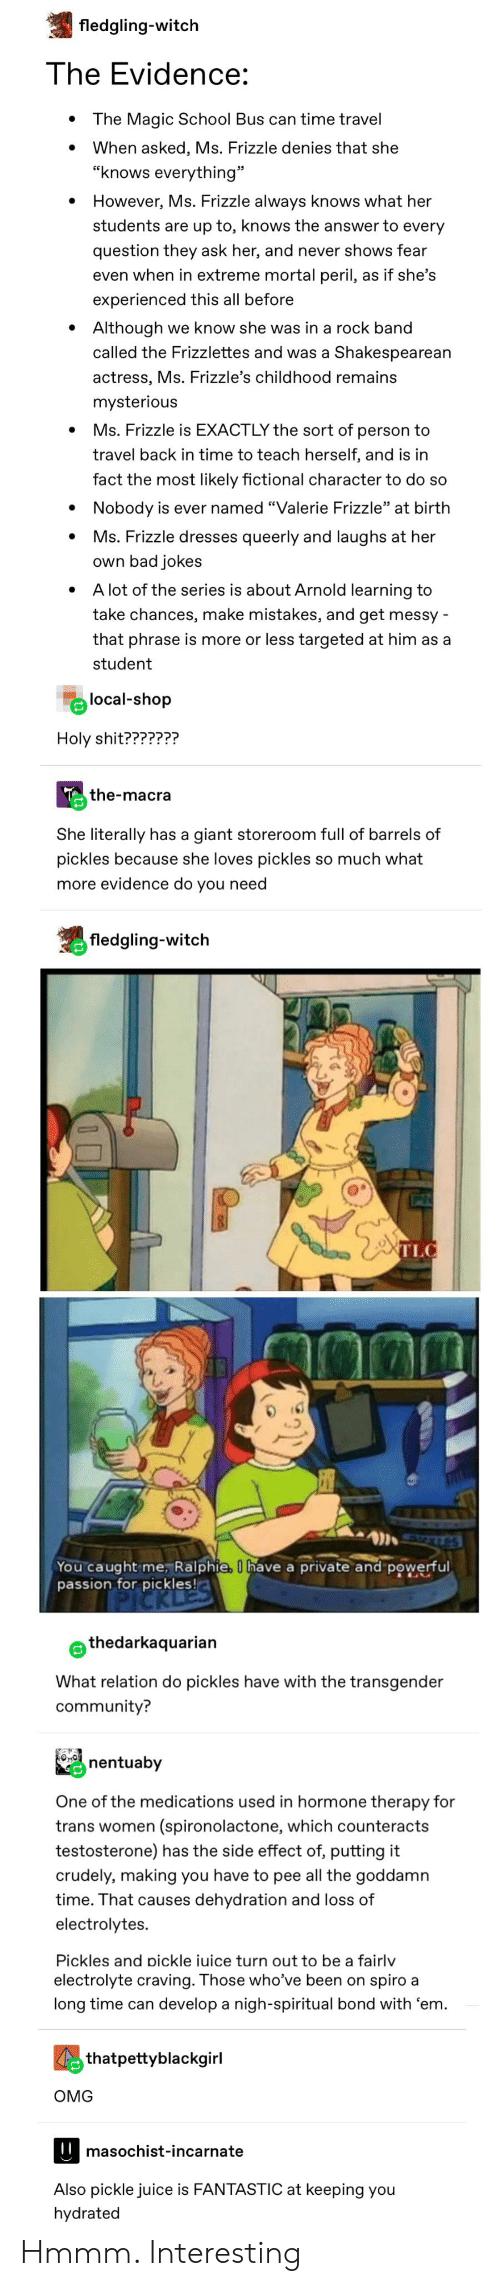 """The Magic School Bus: fledgling-witch  The Evidence:  The Magic School Bus can time travel  When asked, Ms. Frizzle denies that she  """"knows everything""""  However, Ms. Frizzle always knows what her  students are up to, knows the answer to every  question they ask her, and never shows fear  even when in extreme mortal peril, as if she's  experienced this all before  Although  we know she was in a rock band  called the Frizzlettes and was a Shakespearean  actress, Ms. Frizzle's childhood remains  mysterious  Ms. Frizzle is EXACTLY the sort of person to  travel back in time to teach herself, and is in  fact the most likely fictional character to do so  Nobody is ever named """"Valerie Frizzle"""" at birth  Ms. Frizzle dresses queerly and laughs at her  own bad jokes  A lot of the series is about Arnold learning to  take chances, make mistakes, and get messy  that phrase is more or less targeted at him as a  student  local-shop  Holy shit???????  the-macra  She literally has a giant storeroom full of barrels of  pickles because she loves pickles so much what  more evidence do you need  fledgling-witch  TLC  ES  You caught me, Ralphie, Ihave a private and powerful  passion for pickles!  thedarkaquarian  What relation do pickles have with the transgender  community?  nentuaby  One of the medications used in hormone therapy for  (spironolactone, which counteracts  testosterone) has the side effect of, putting it  trans women  crudely, making you have to pee all the goddamn  time. That causes dehydration and loss of  electrolytes.  Pickles and pickle iuice turn out to be a fairlv  electrolyte craving. Those who've been on spiro a  long time can develop a nigh-spiritual bond with 'em  thatpettyblackgirl  ОMG  masochist-incarnate  Also pickle juice is FANTASTIC at keeping you  hydrated Hmmm. Interesting"""